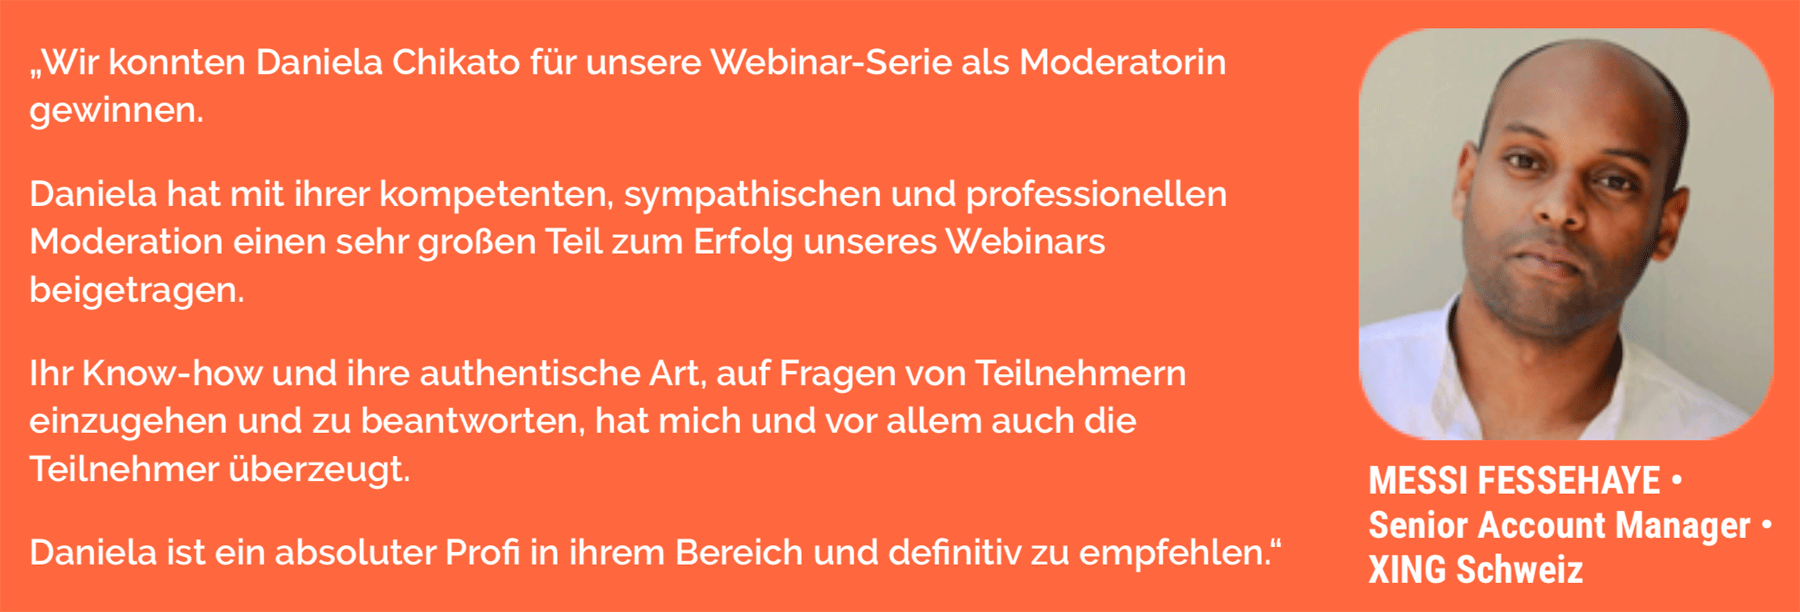 Referenz_Keynote_XING-TalentManager